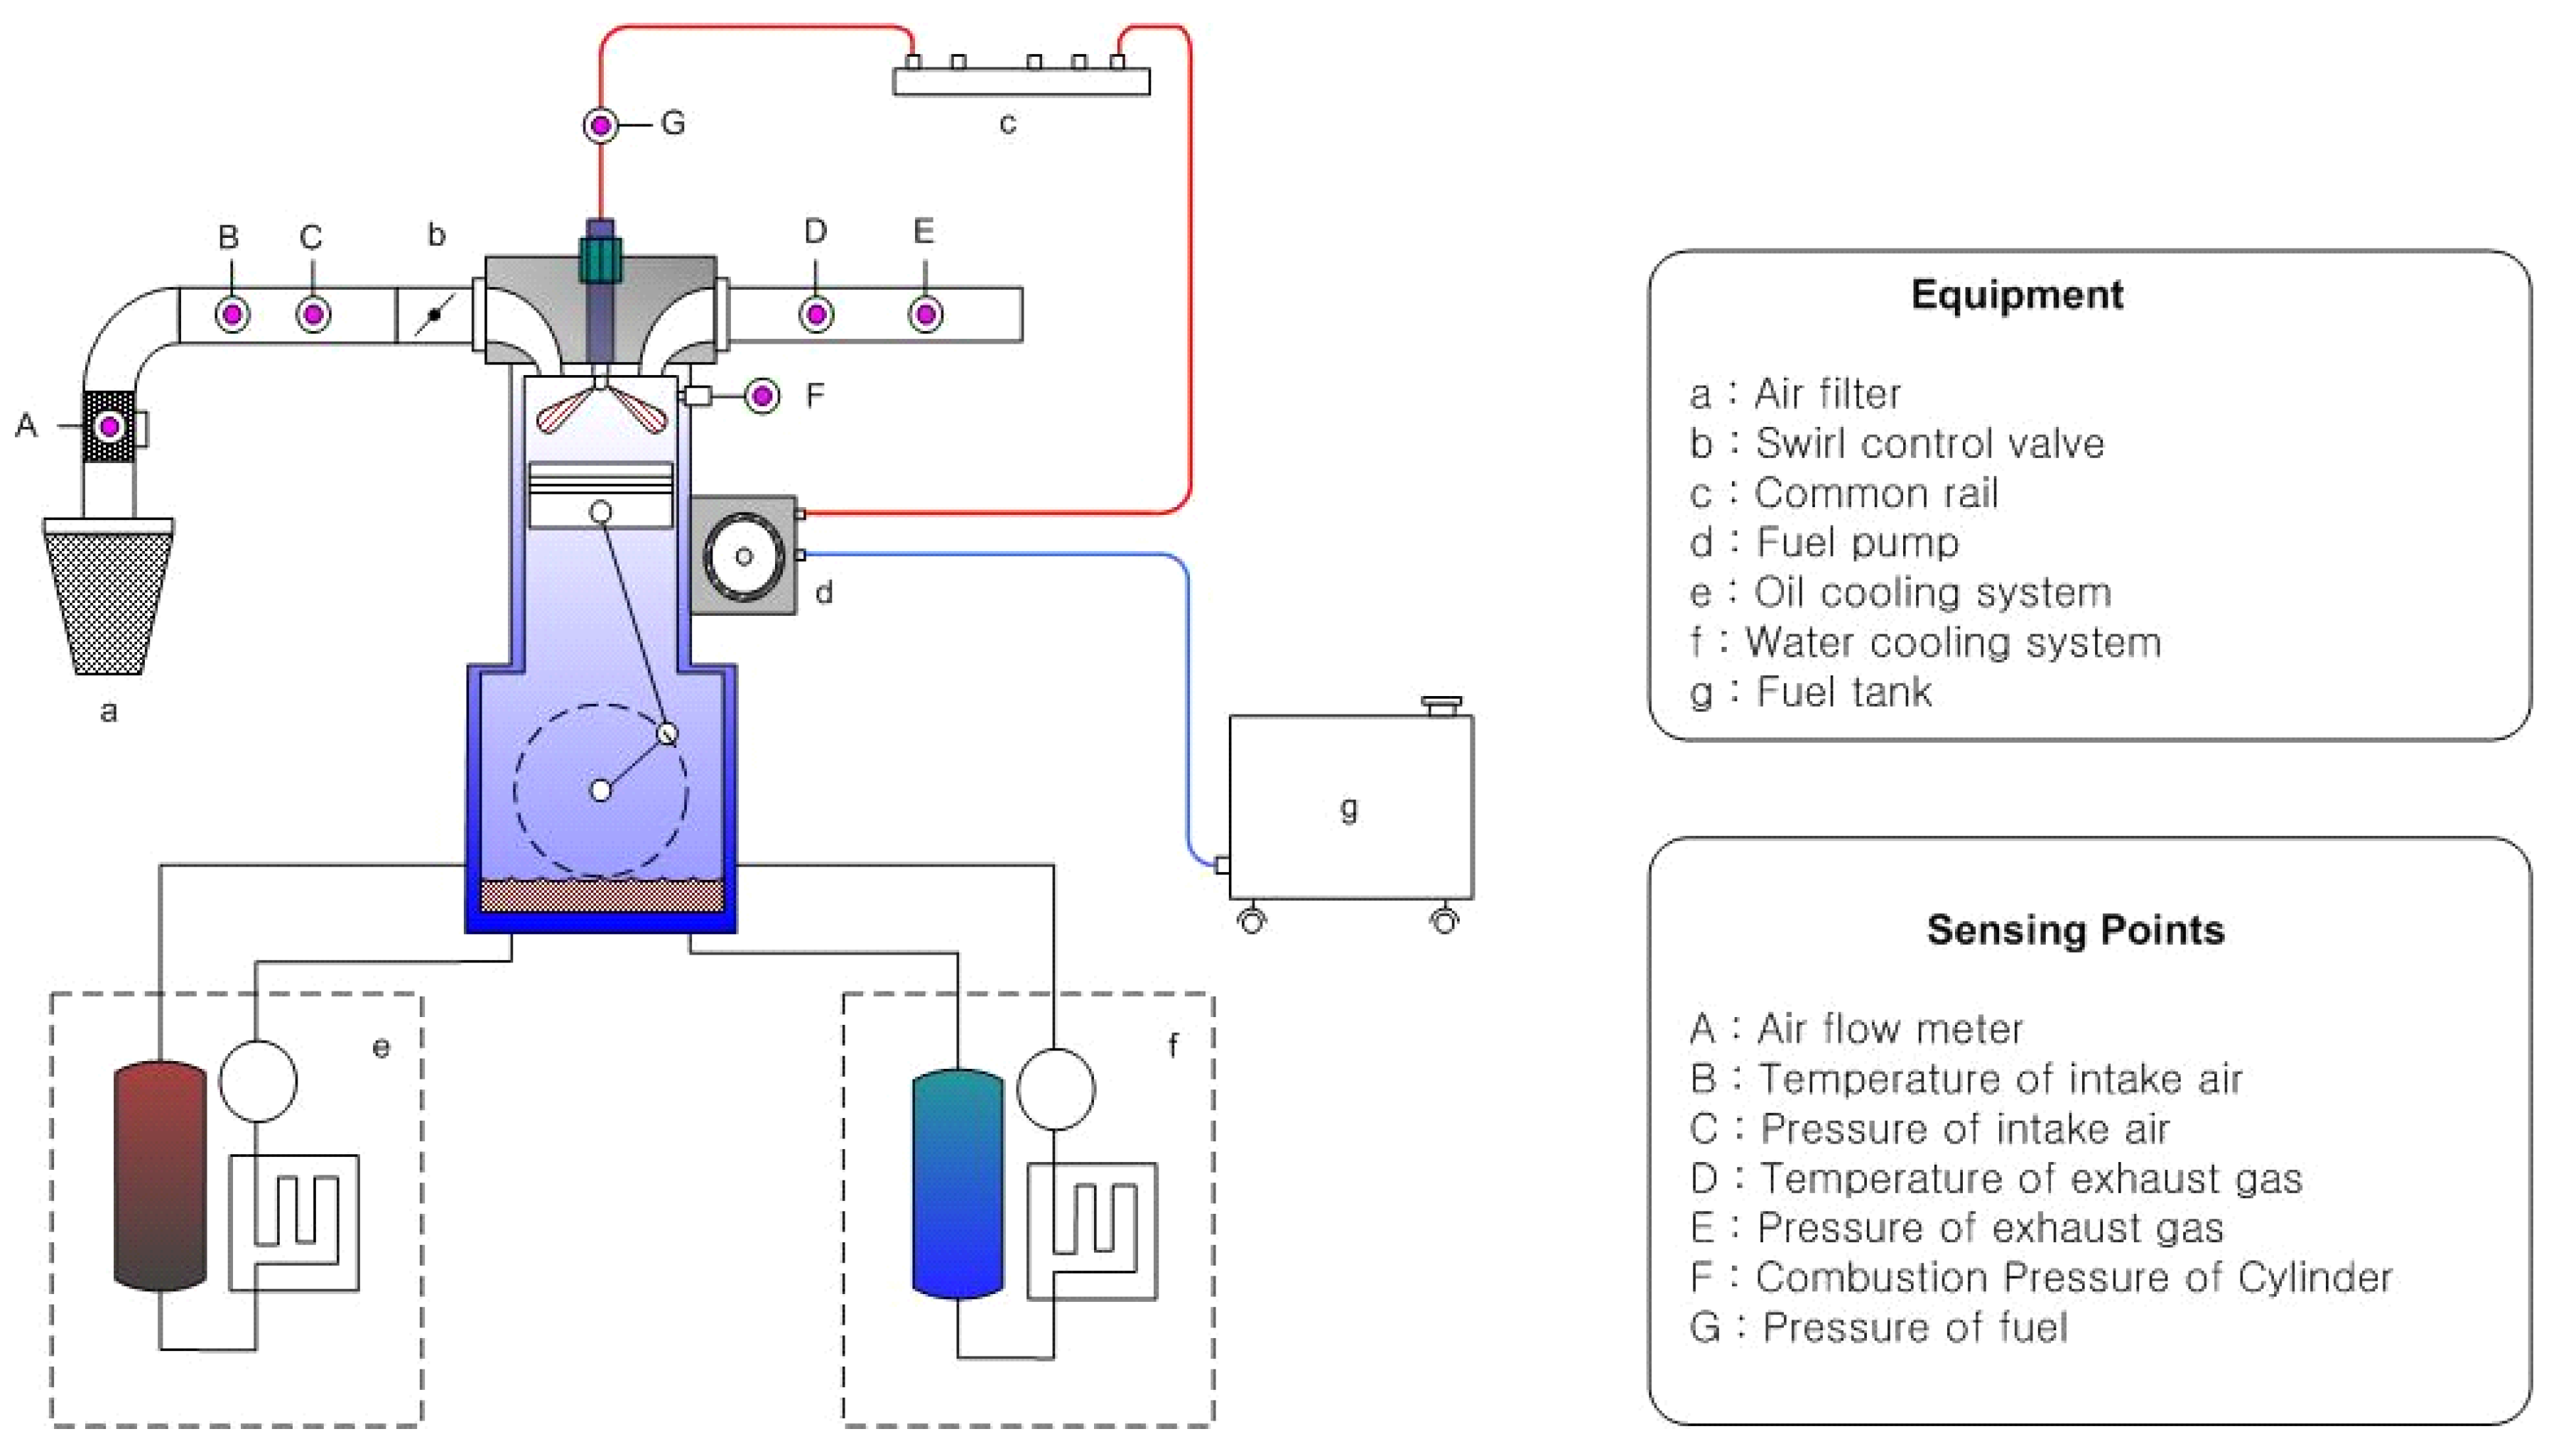 Energies Free Full Text Emission Characteristics For A Exhaust System Diagram Related Keywords Suggestions No